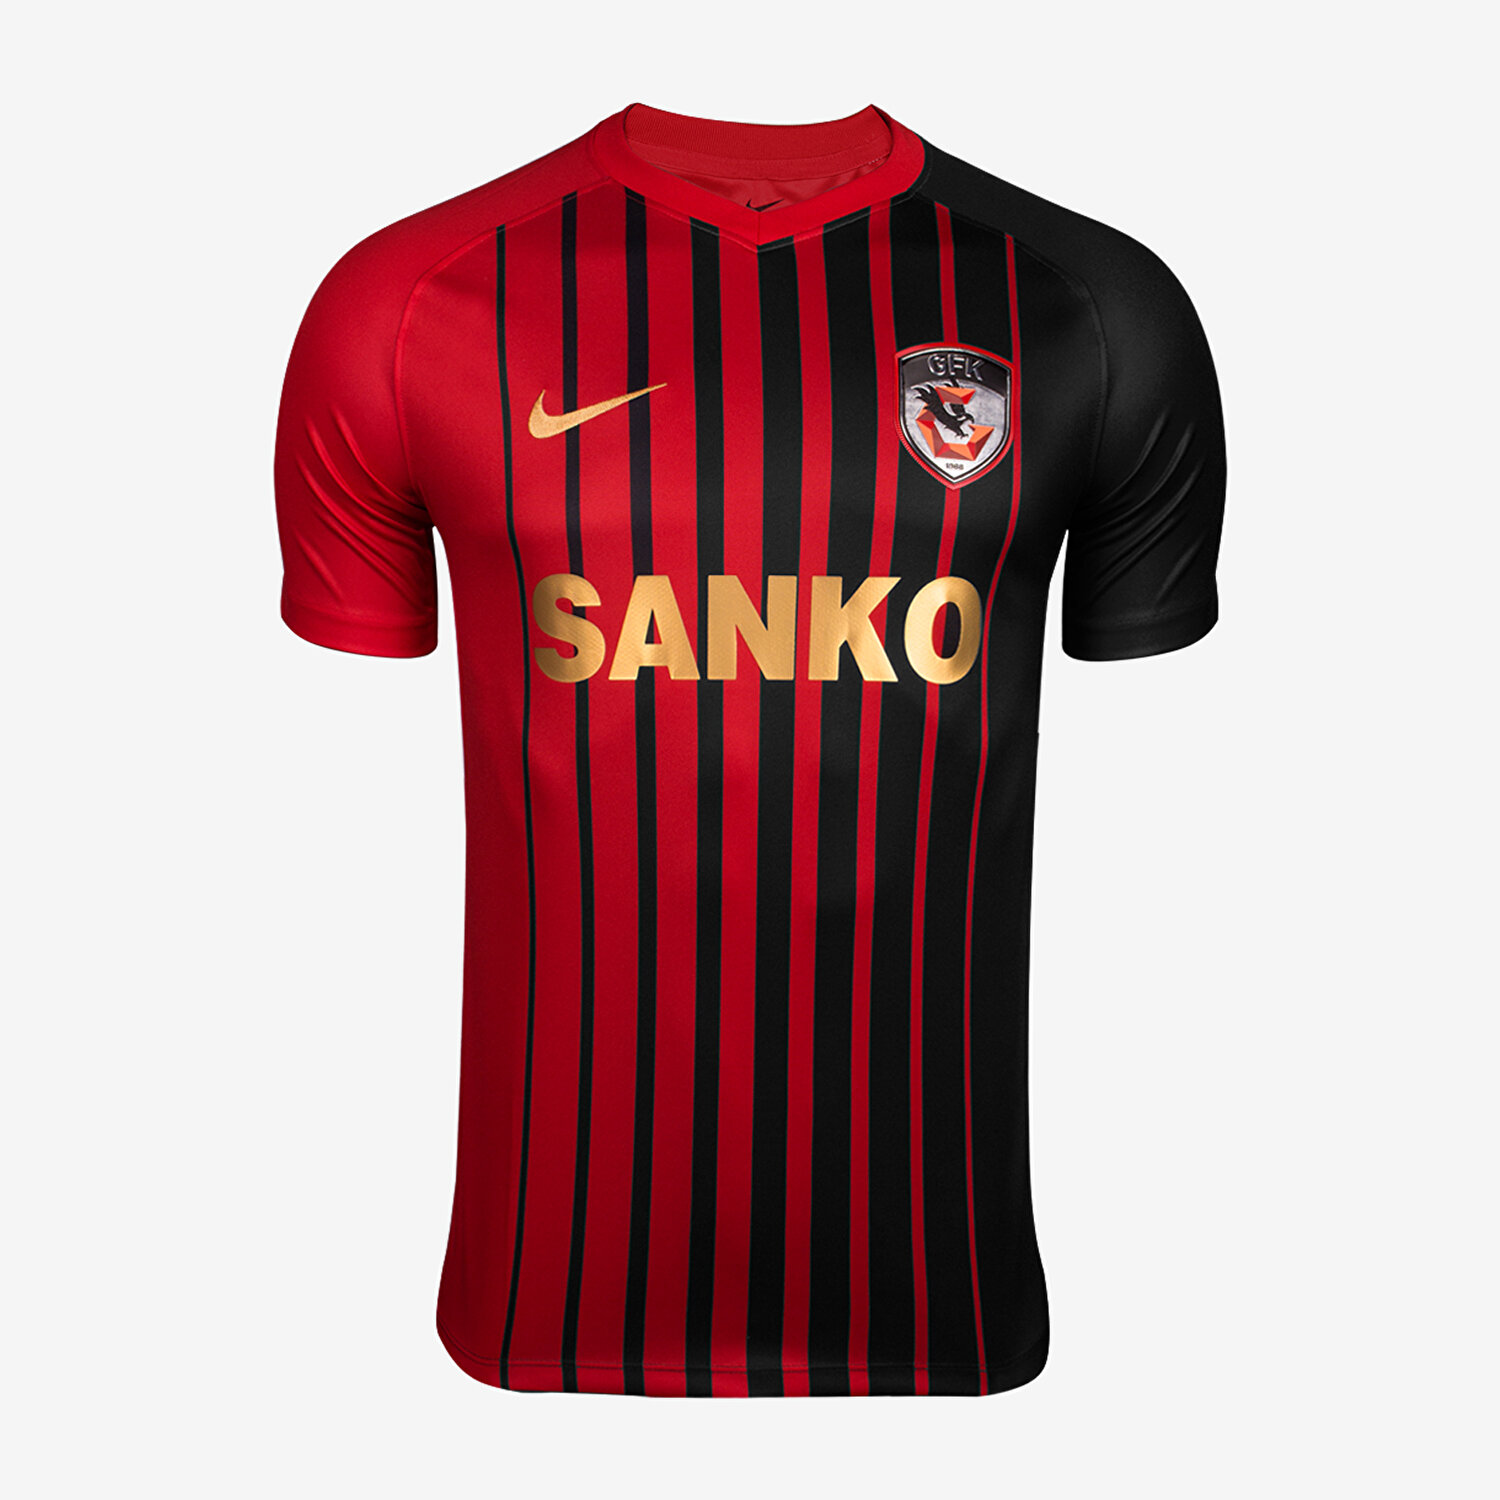 Gaziantep Fk 2019 20 Home Match Jersey Dhl Express Shipping Worldwide Clothing Shoes Accessories Soccer